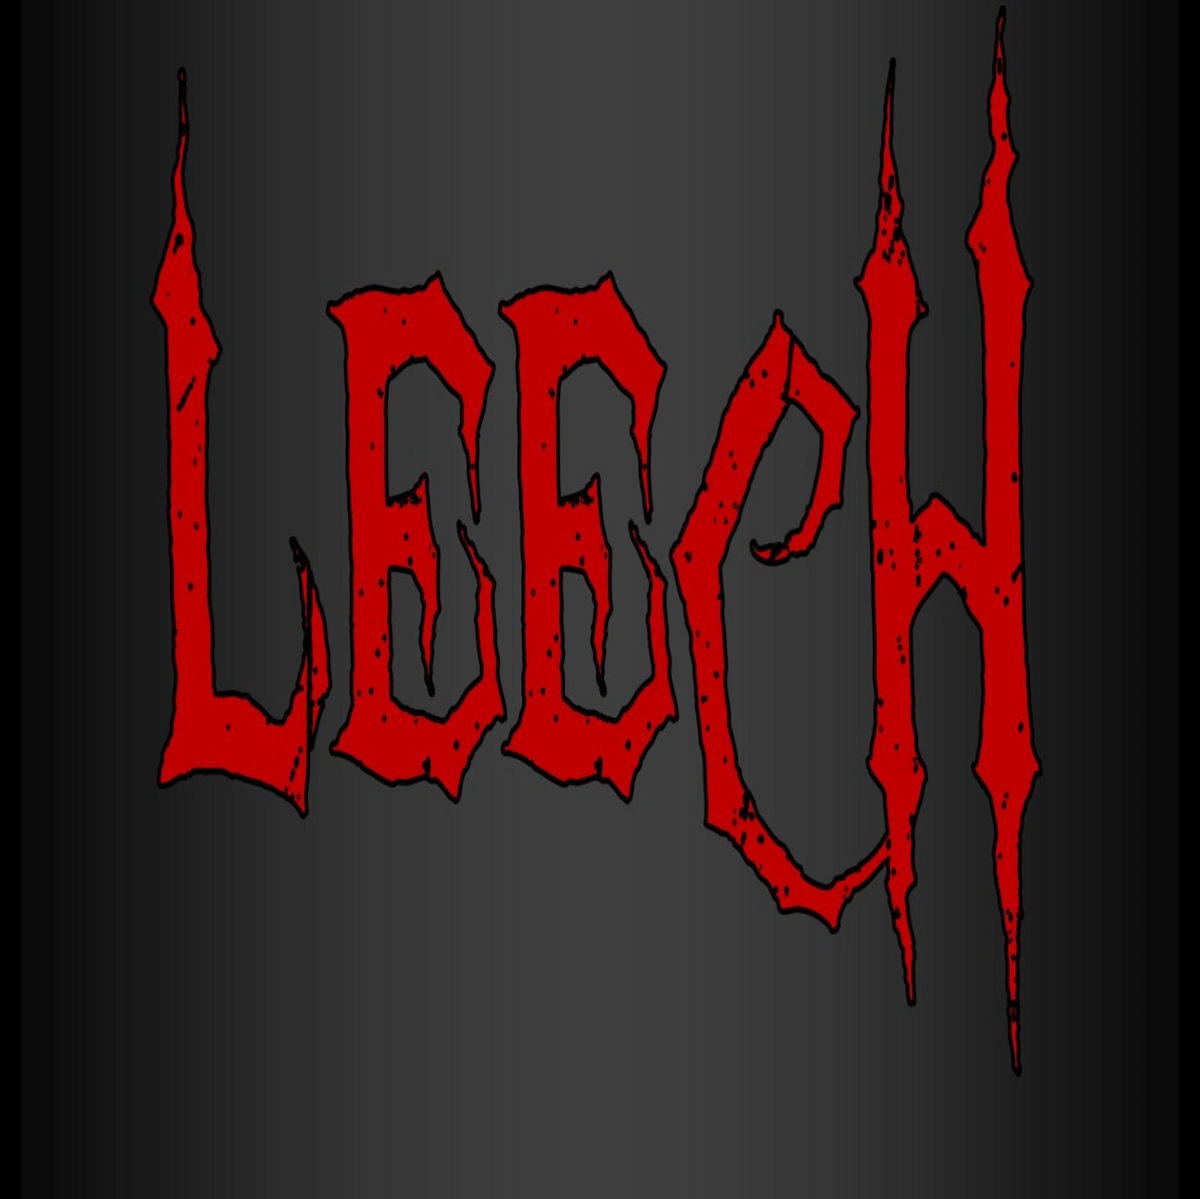 Leech by Man Made Horror